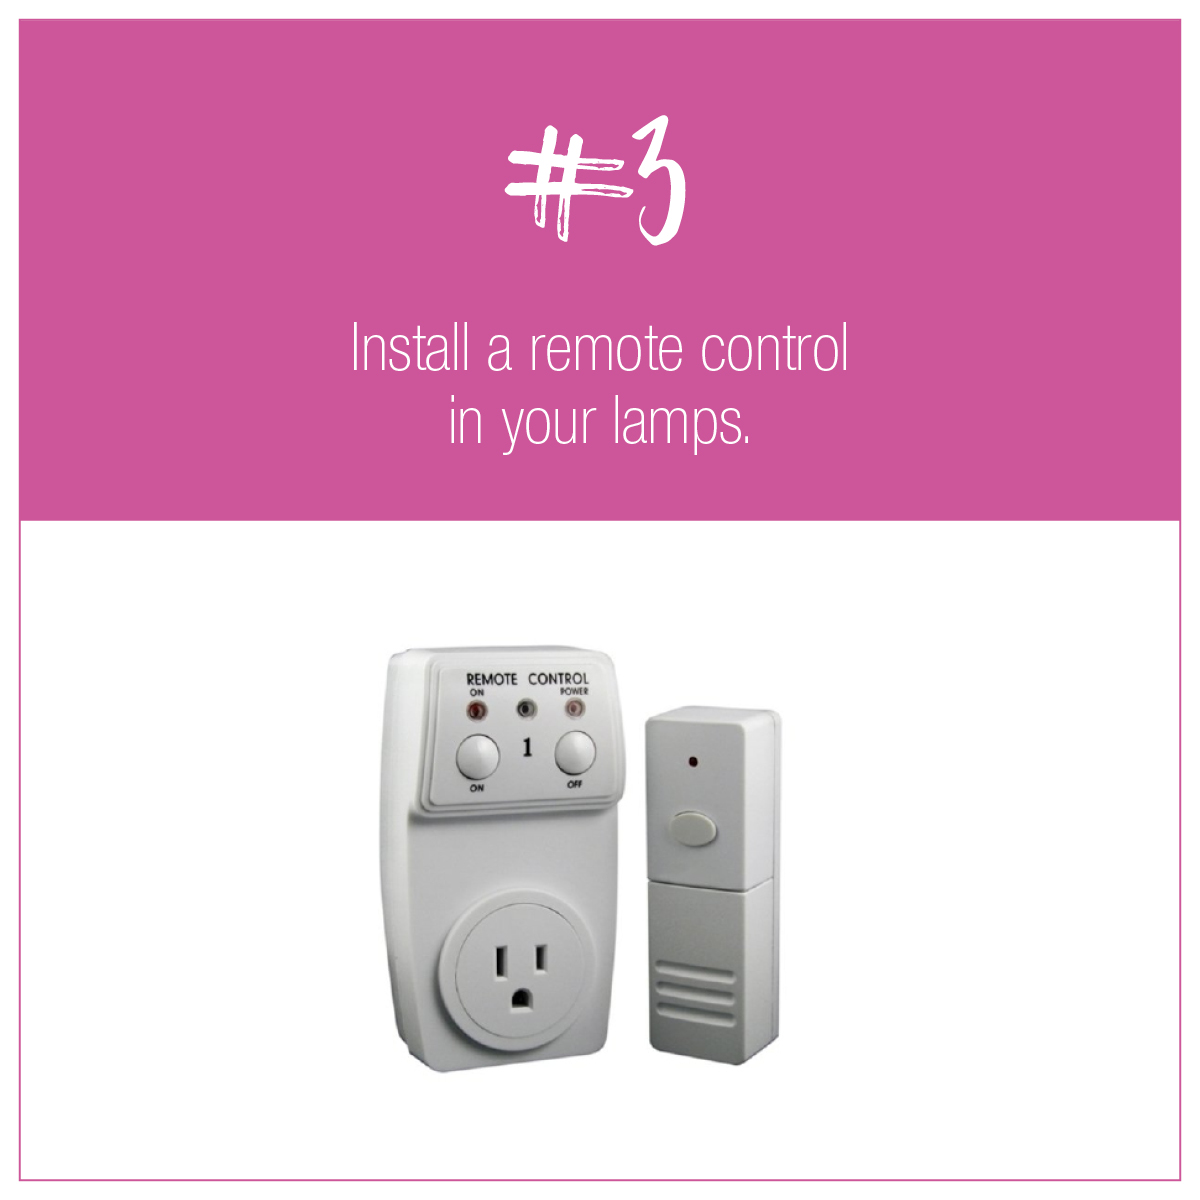 TIP 3: Install a remote control in your lamps.